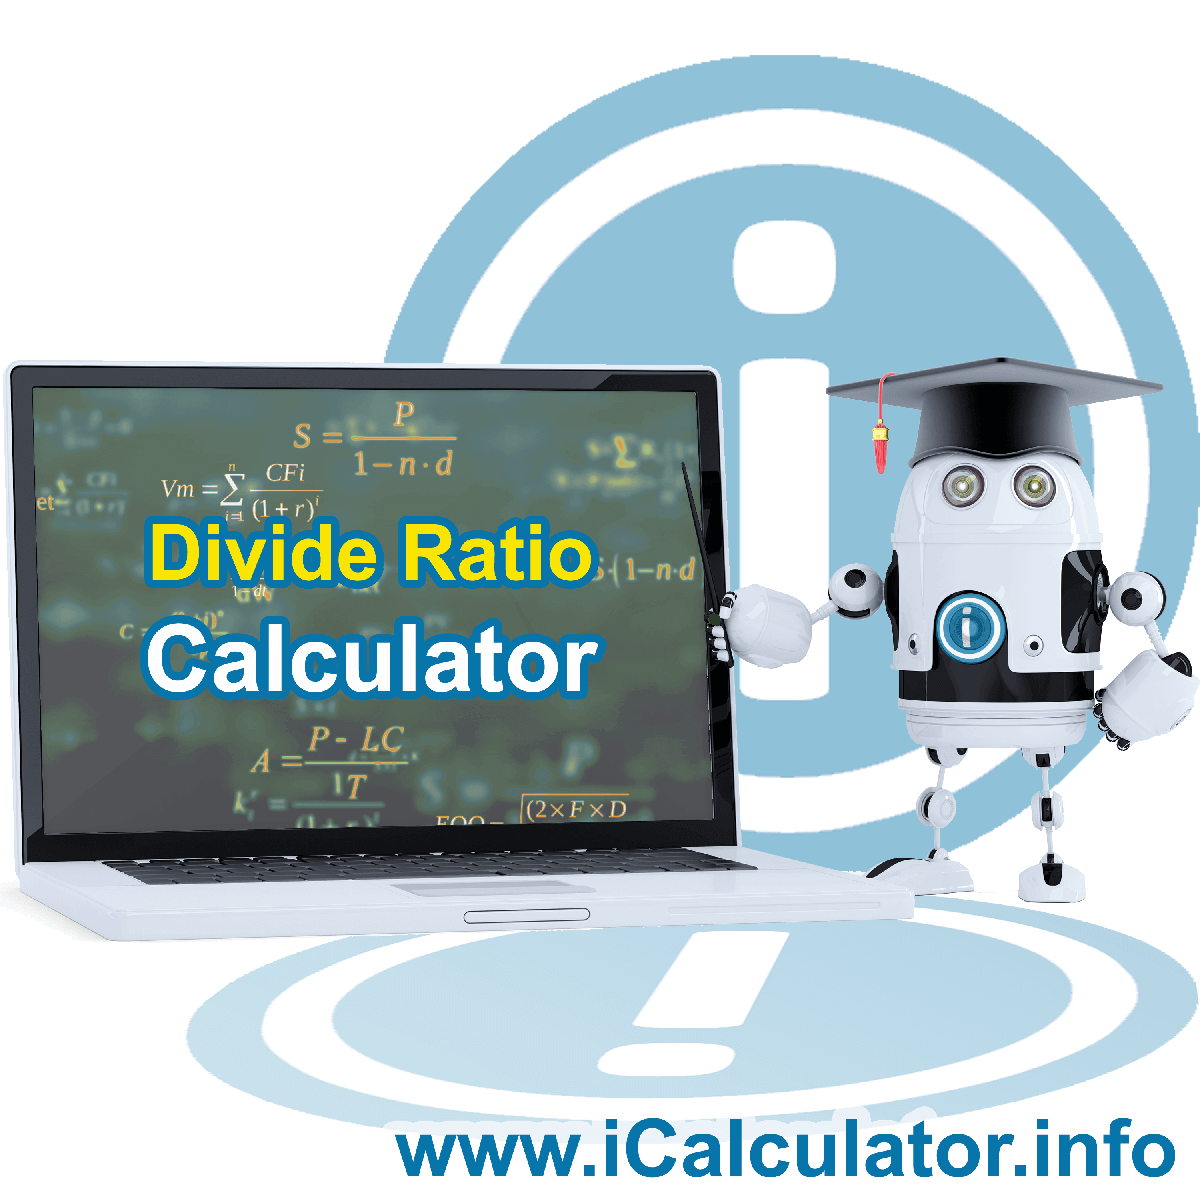 Divide Ratio. This image shows the properties and divide ratio formula for the Divide Ratio